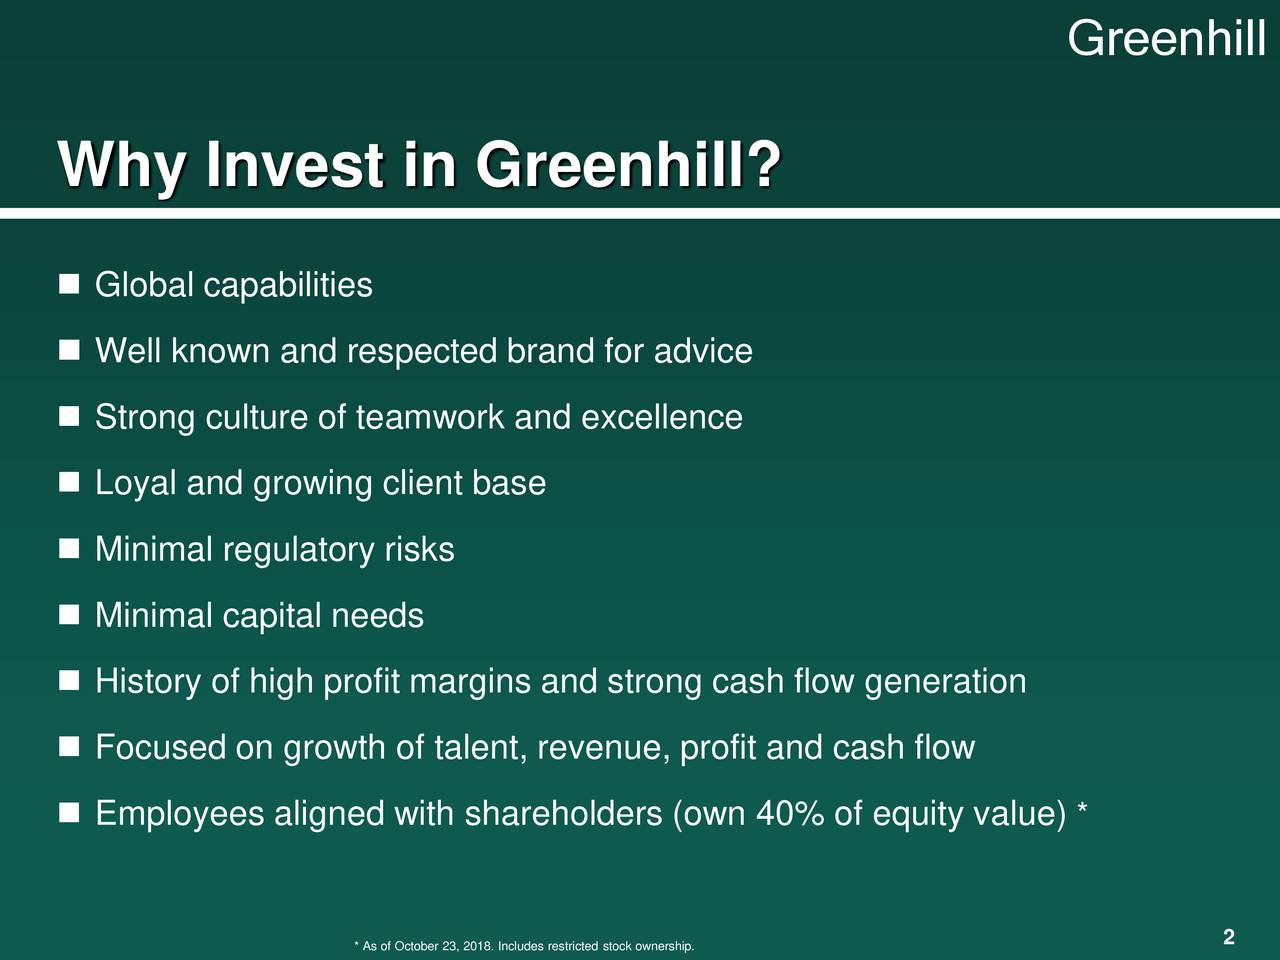 Why Invest in Greenhill?  Global capabilities  Well known and respected brand for advice  Strong culture of teamwork and excellence  Loyal and growing client base  Minimal regulatory risks  Minimal capital needs  History of high profit margins and strong cash flow generation  Focused on growth of talent, revenue, profit and cash flow  Employees aligned with shareholders (own 40% of equity value) *